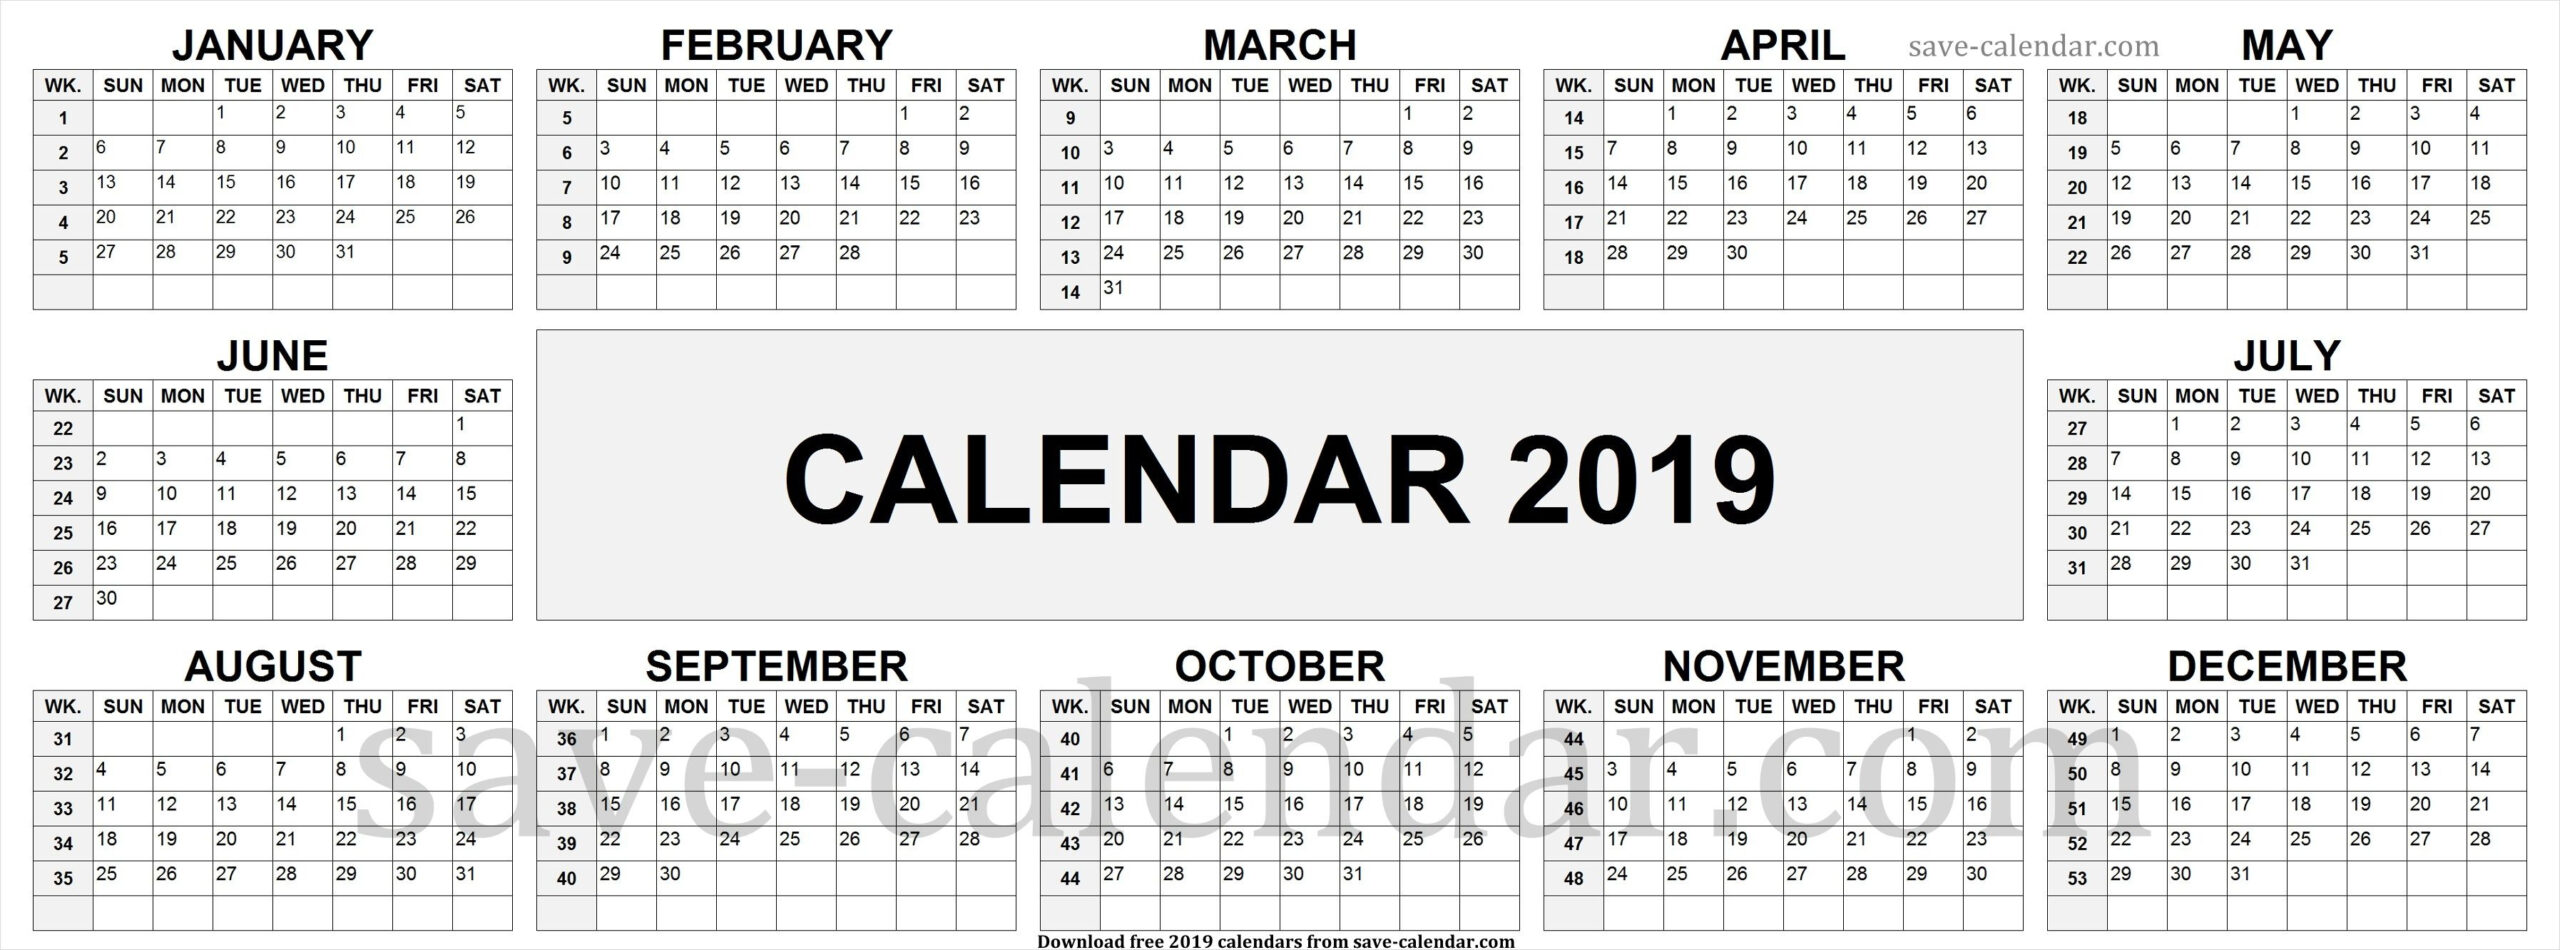 2019 Calendar By Week Numbers | Week Number, Calendar 2019